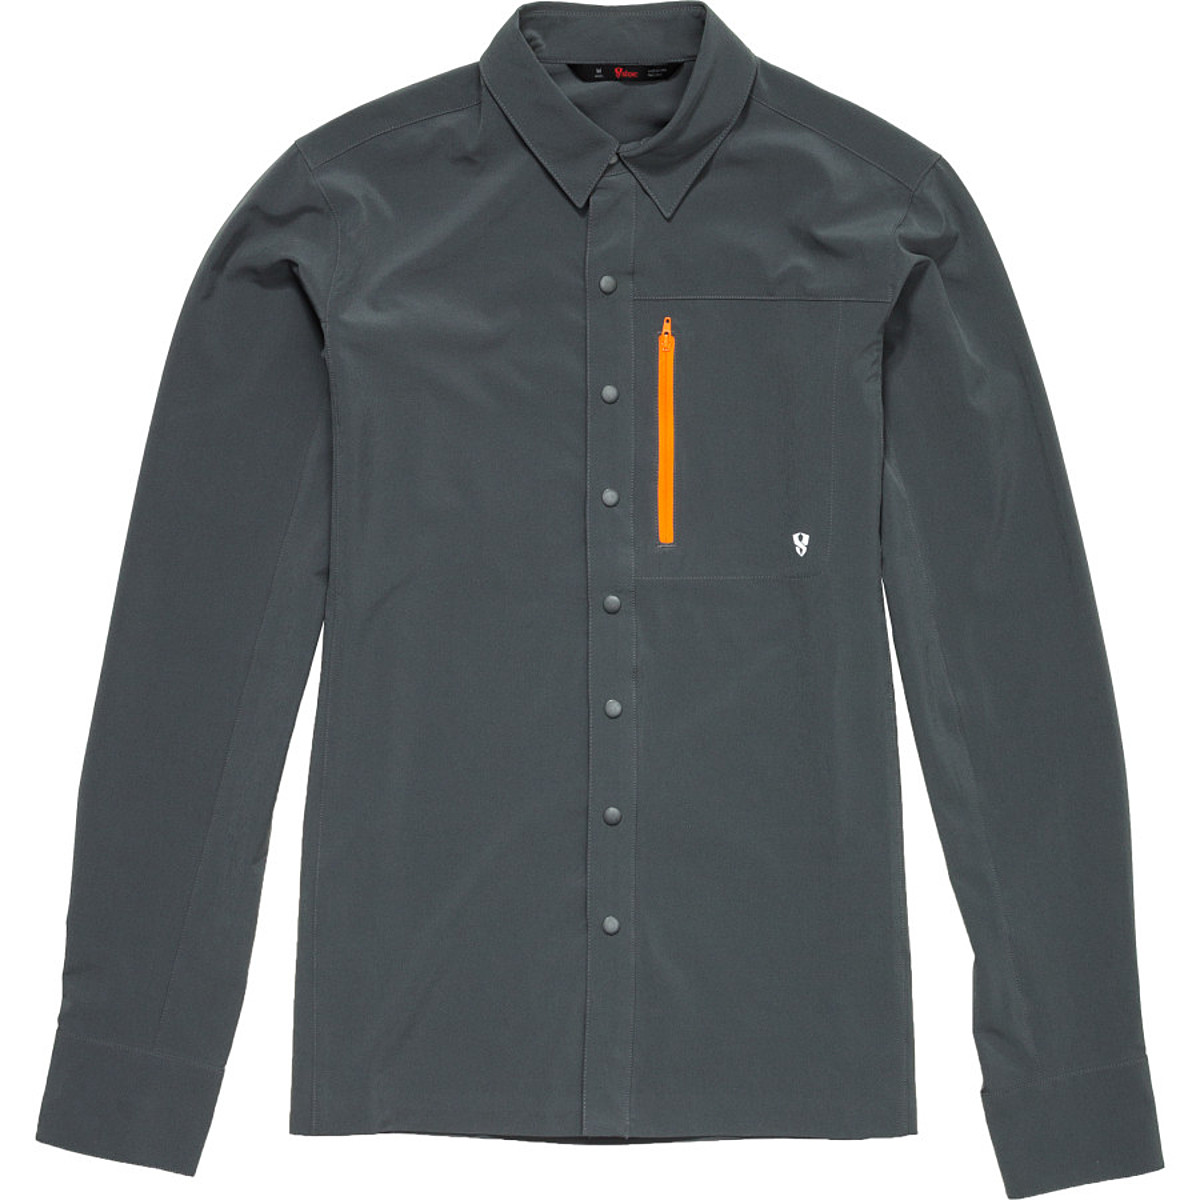 Stoic Roam Shirt - Long-Sleeve